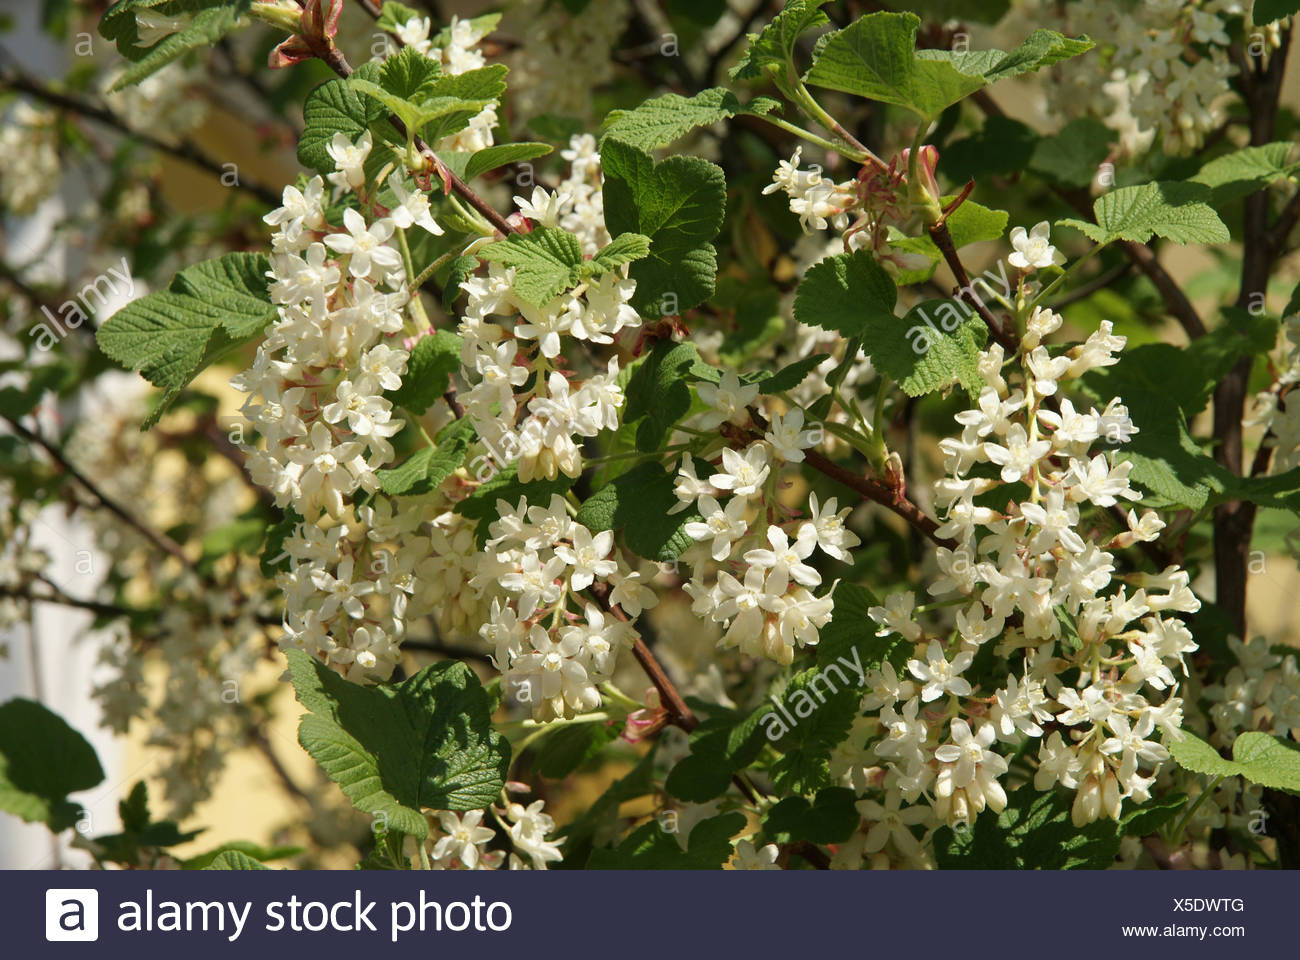 White Flowering Currant Stock Photo 278744832 Alamy